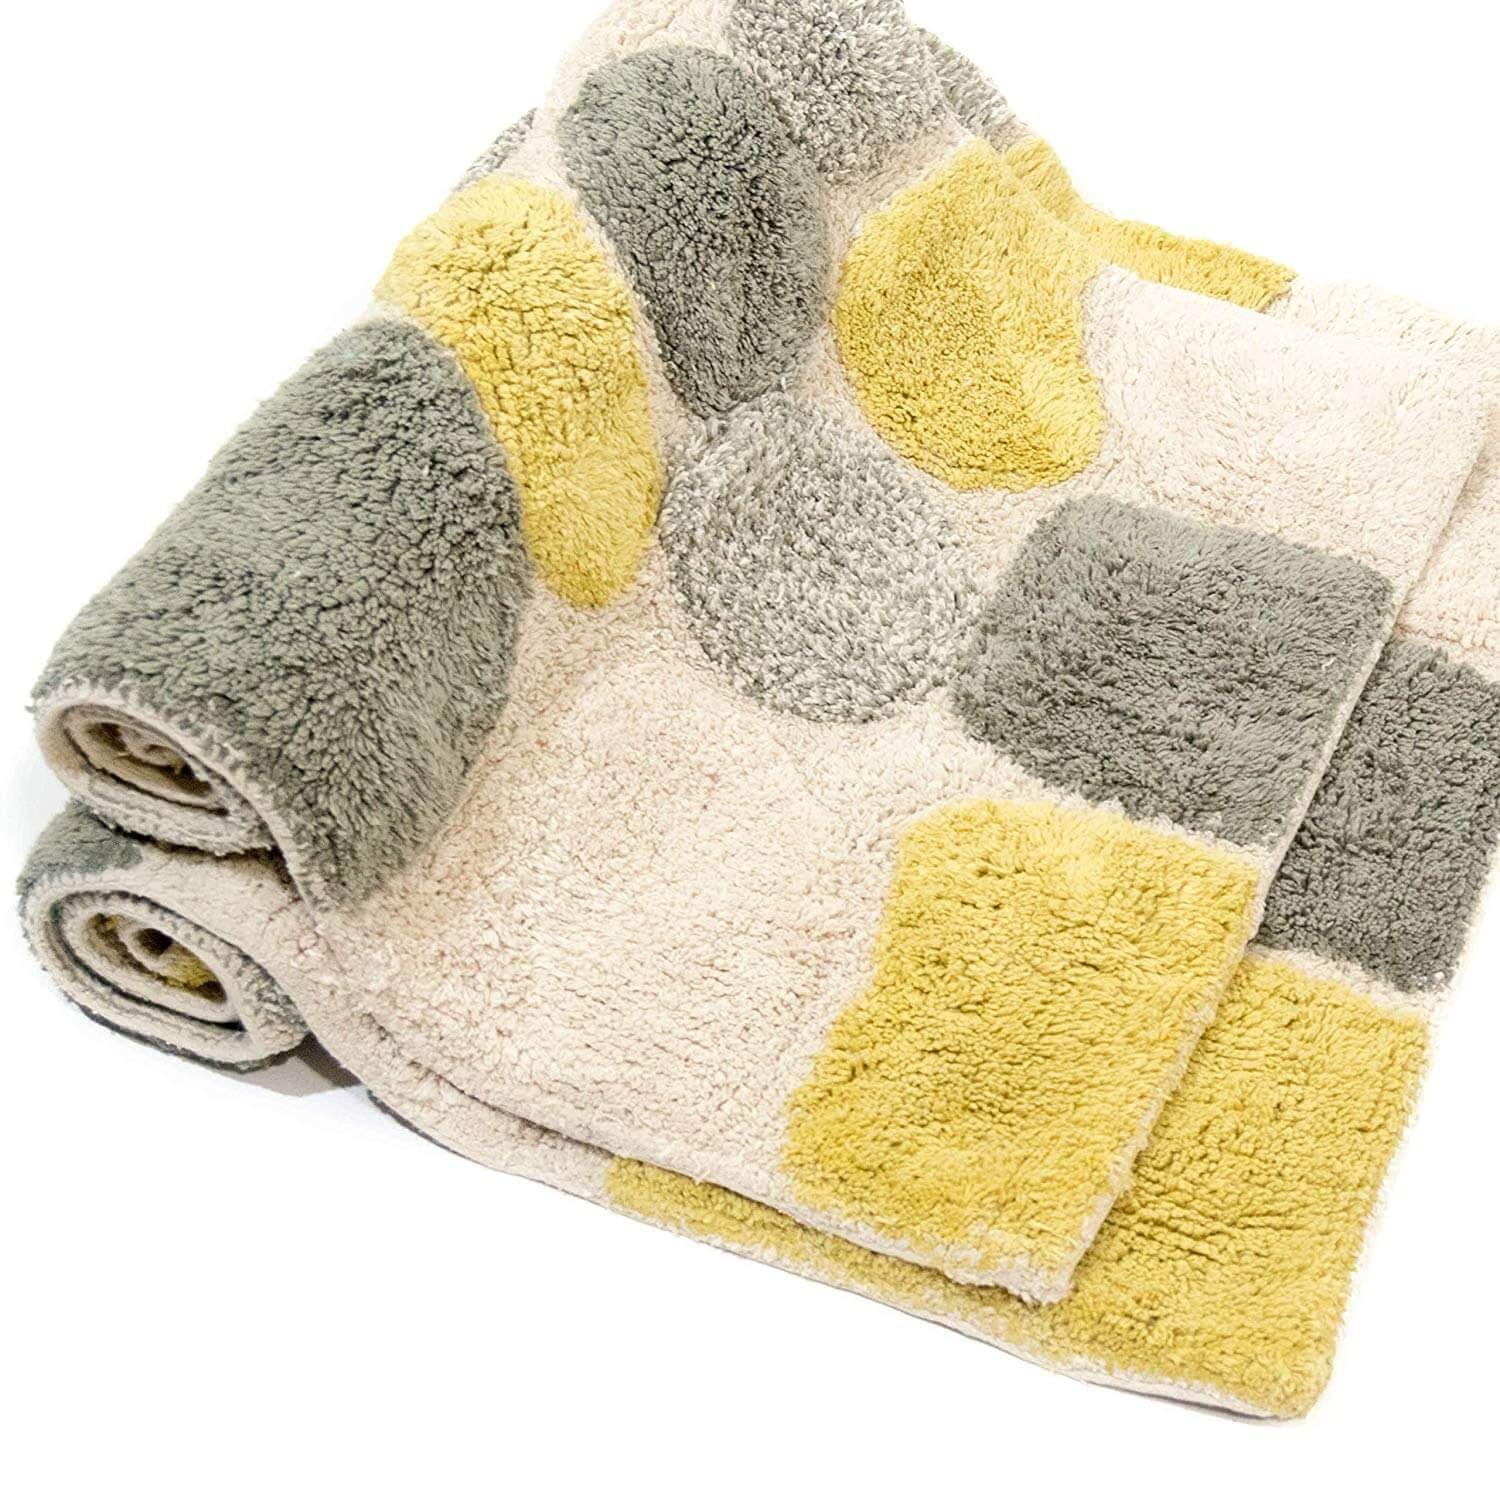 Bed Baths Square Bathroom Hotel Style Bath Rugs Make Floors